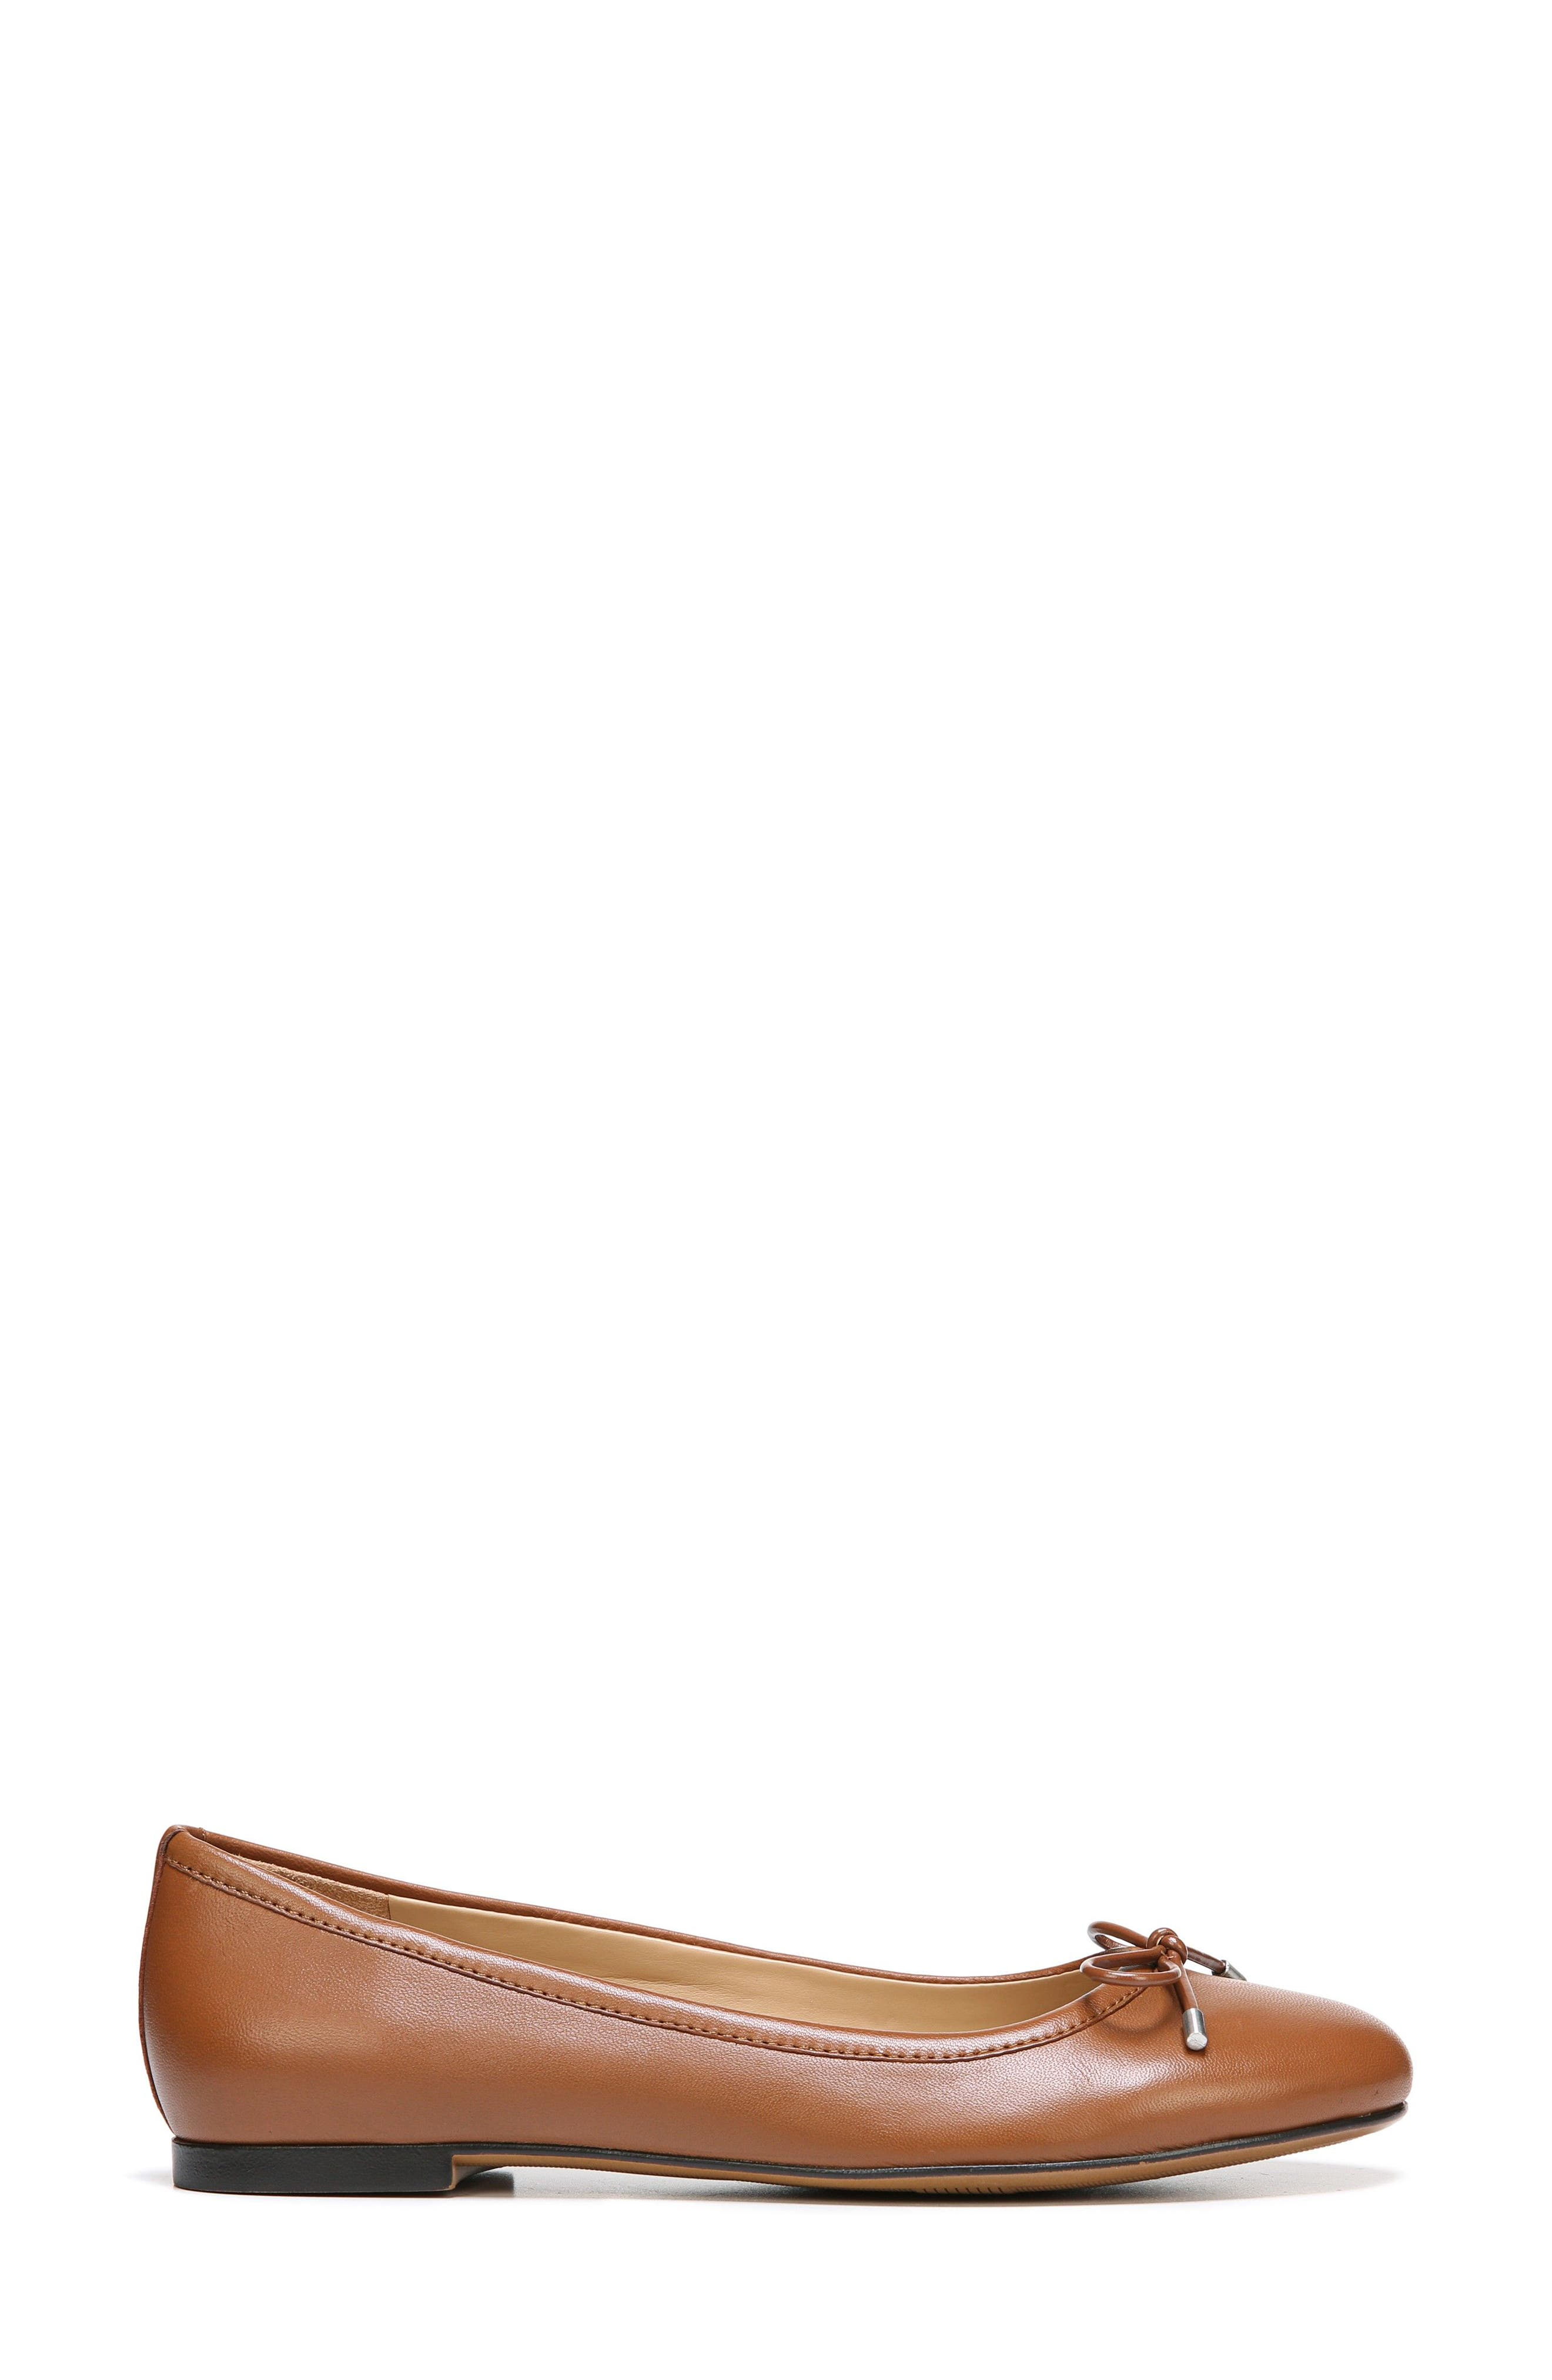 Grace Flat,                             Alternate thumbnail 3, color,                             Saddle Tan Leather